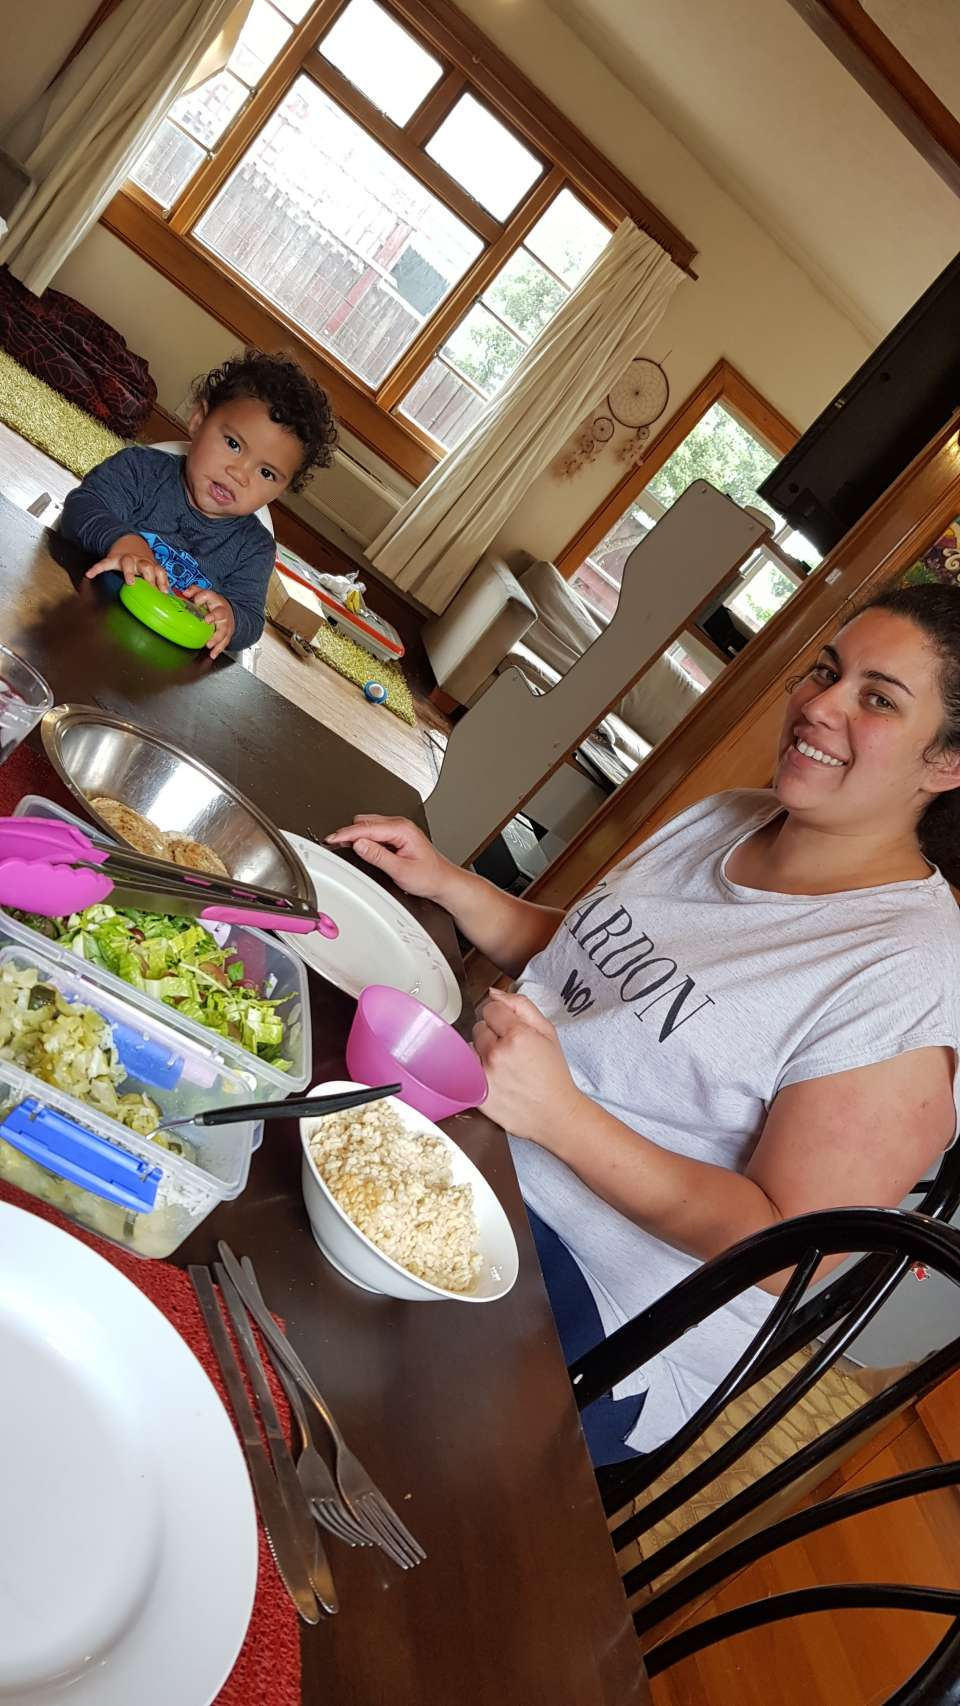 Activity completed: NourishAmount: Ate a delicious lunchSession 5 with Rachel today, we chatted and made bliss balls. Her whanau loved the ones we made last Kai session and so she's been making batches up for them ever since! So awesome cause they are such a yummy healthy treat, then she cooked us a delicious lunch with pan seared tarakihi, salad and brown rice!   #activityNourish